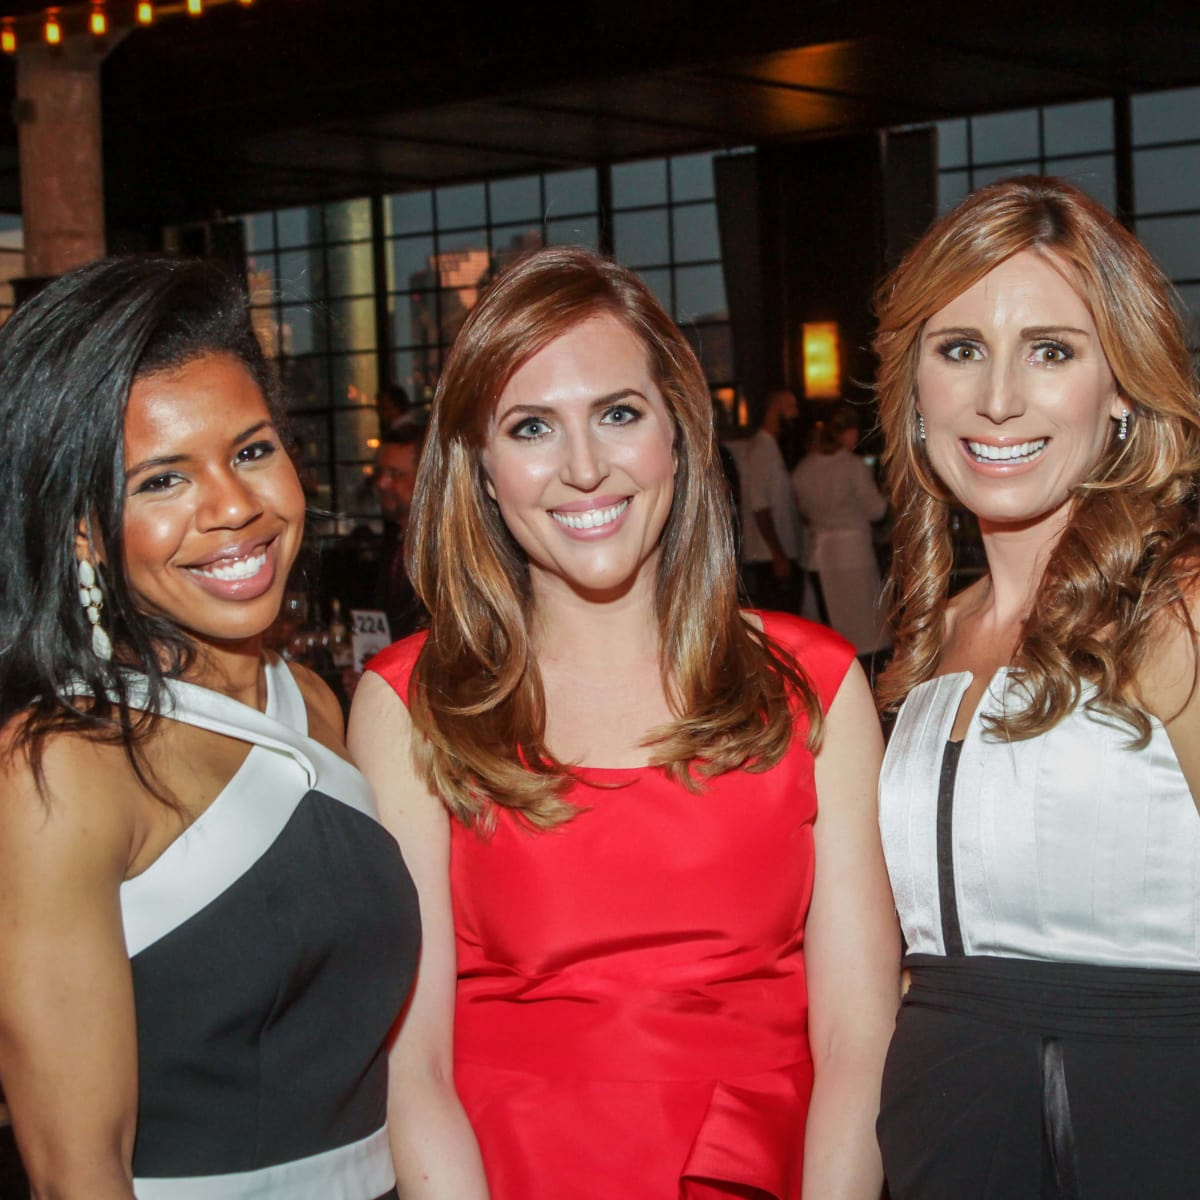 Houston, Domestic Violence Awareness Month event, October 2015, Claire Cormier Thielke, Mary Patton, Brooke Bentley Gunst